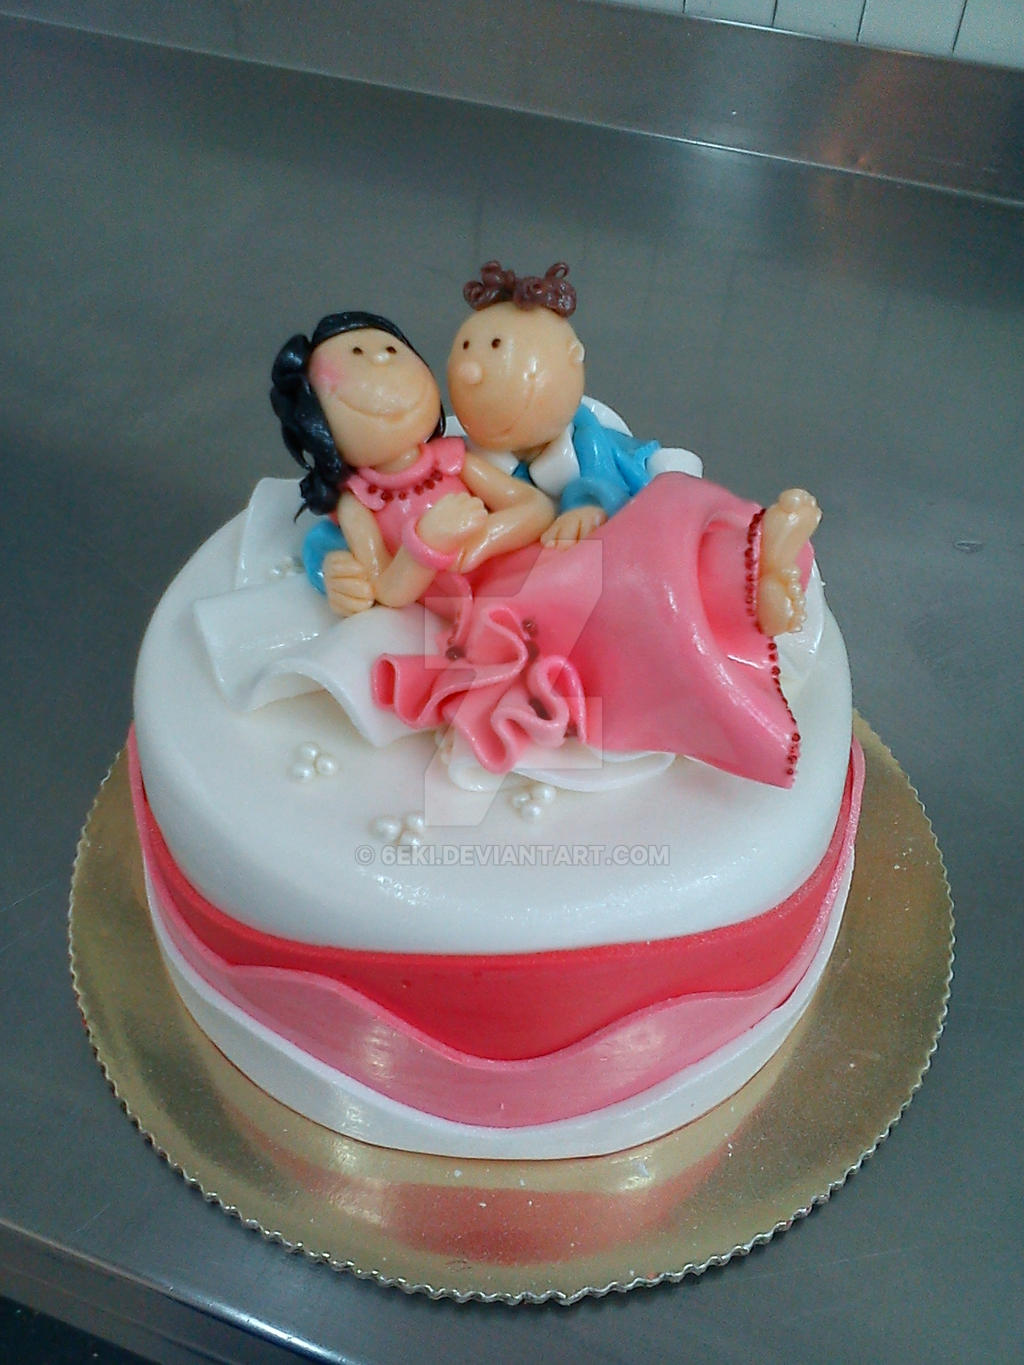 So in Love Cake by 6eki on DeviantArt